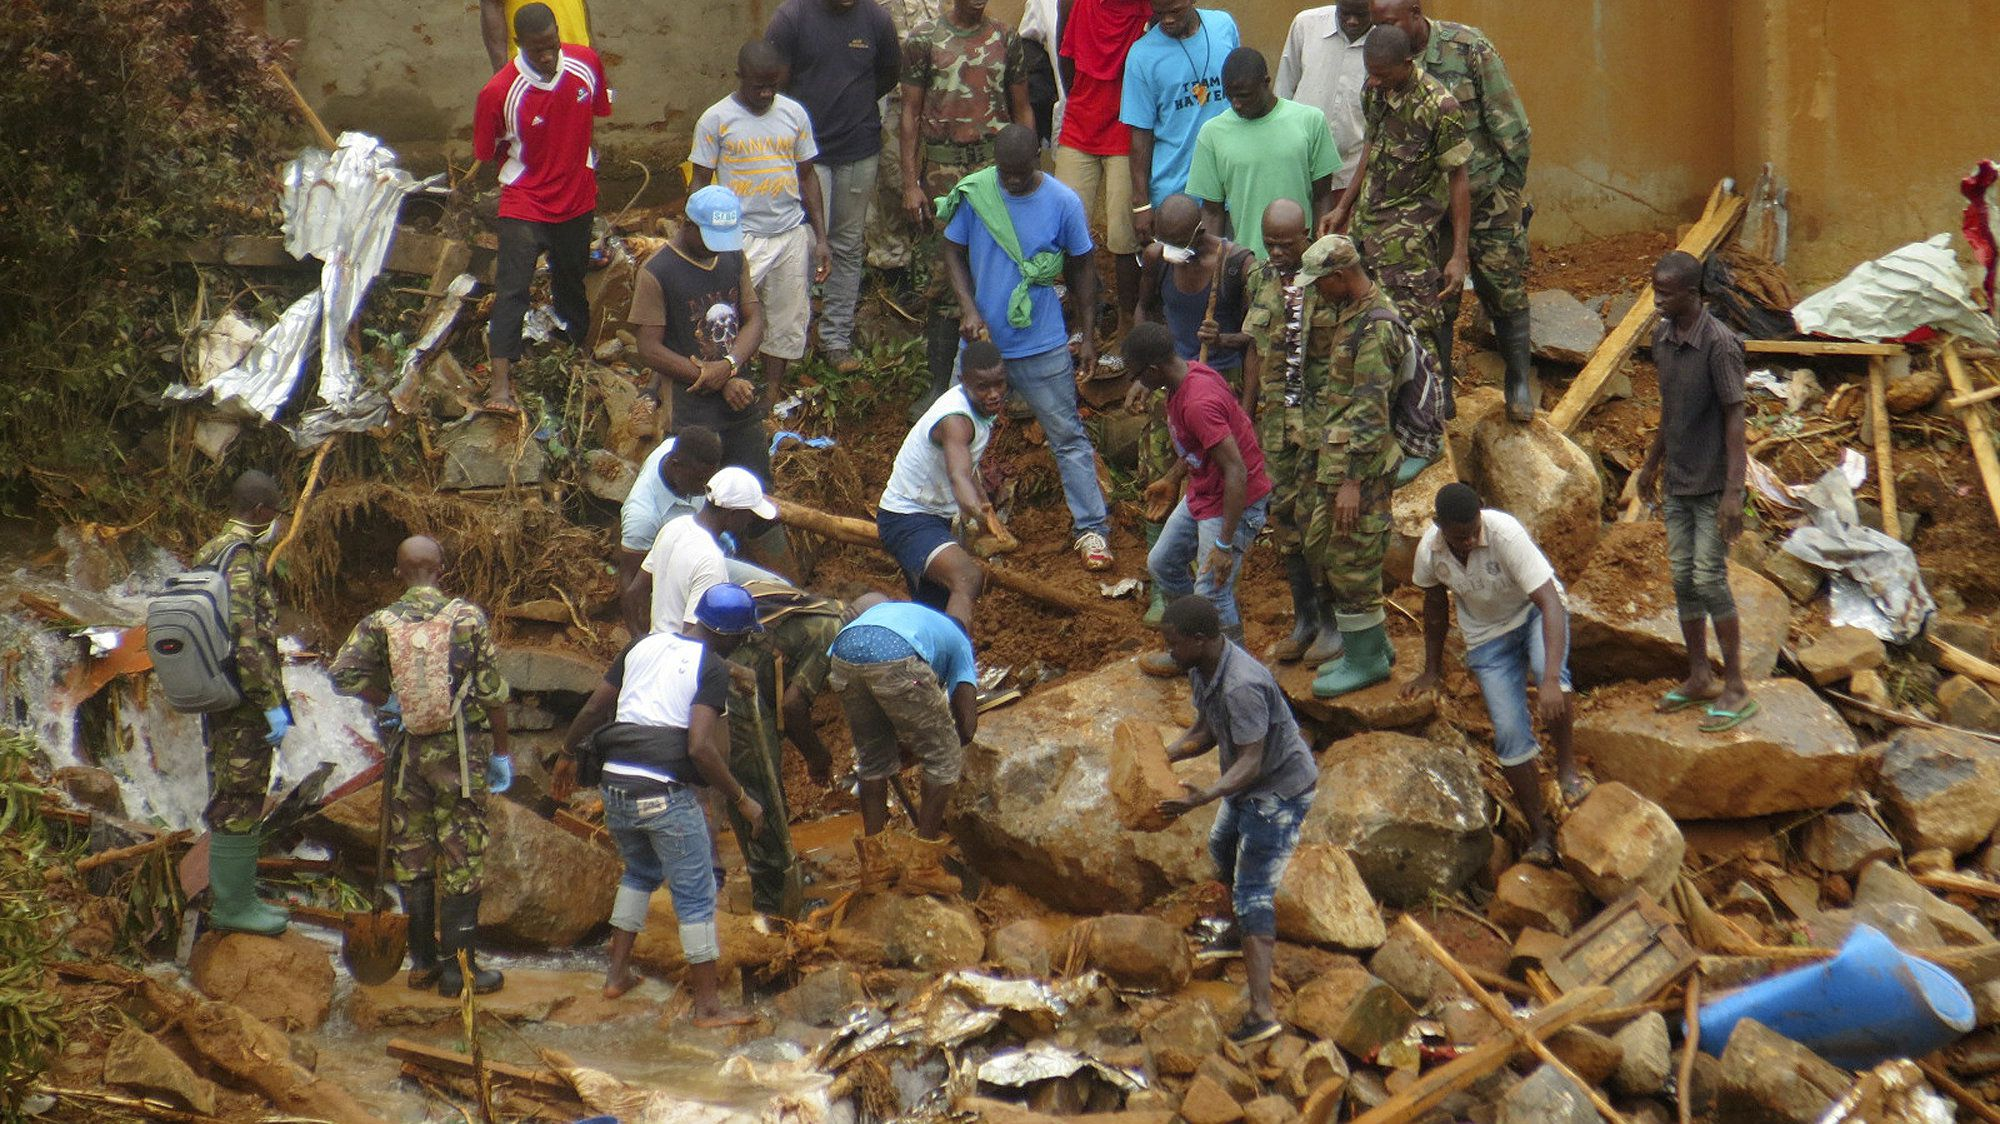 Over 400 Lives Lost In Sierra Leone